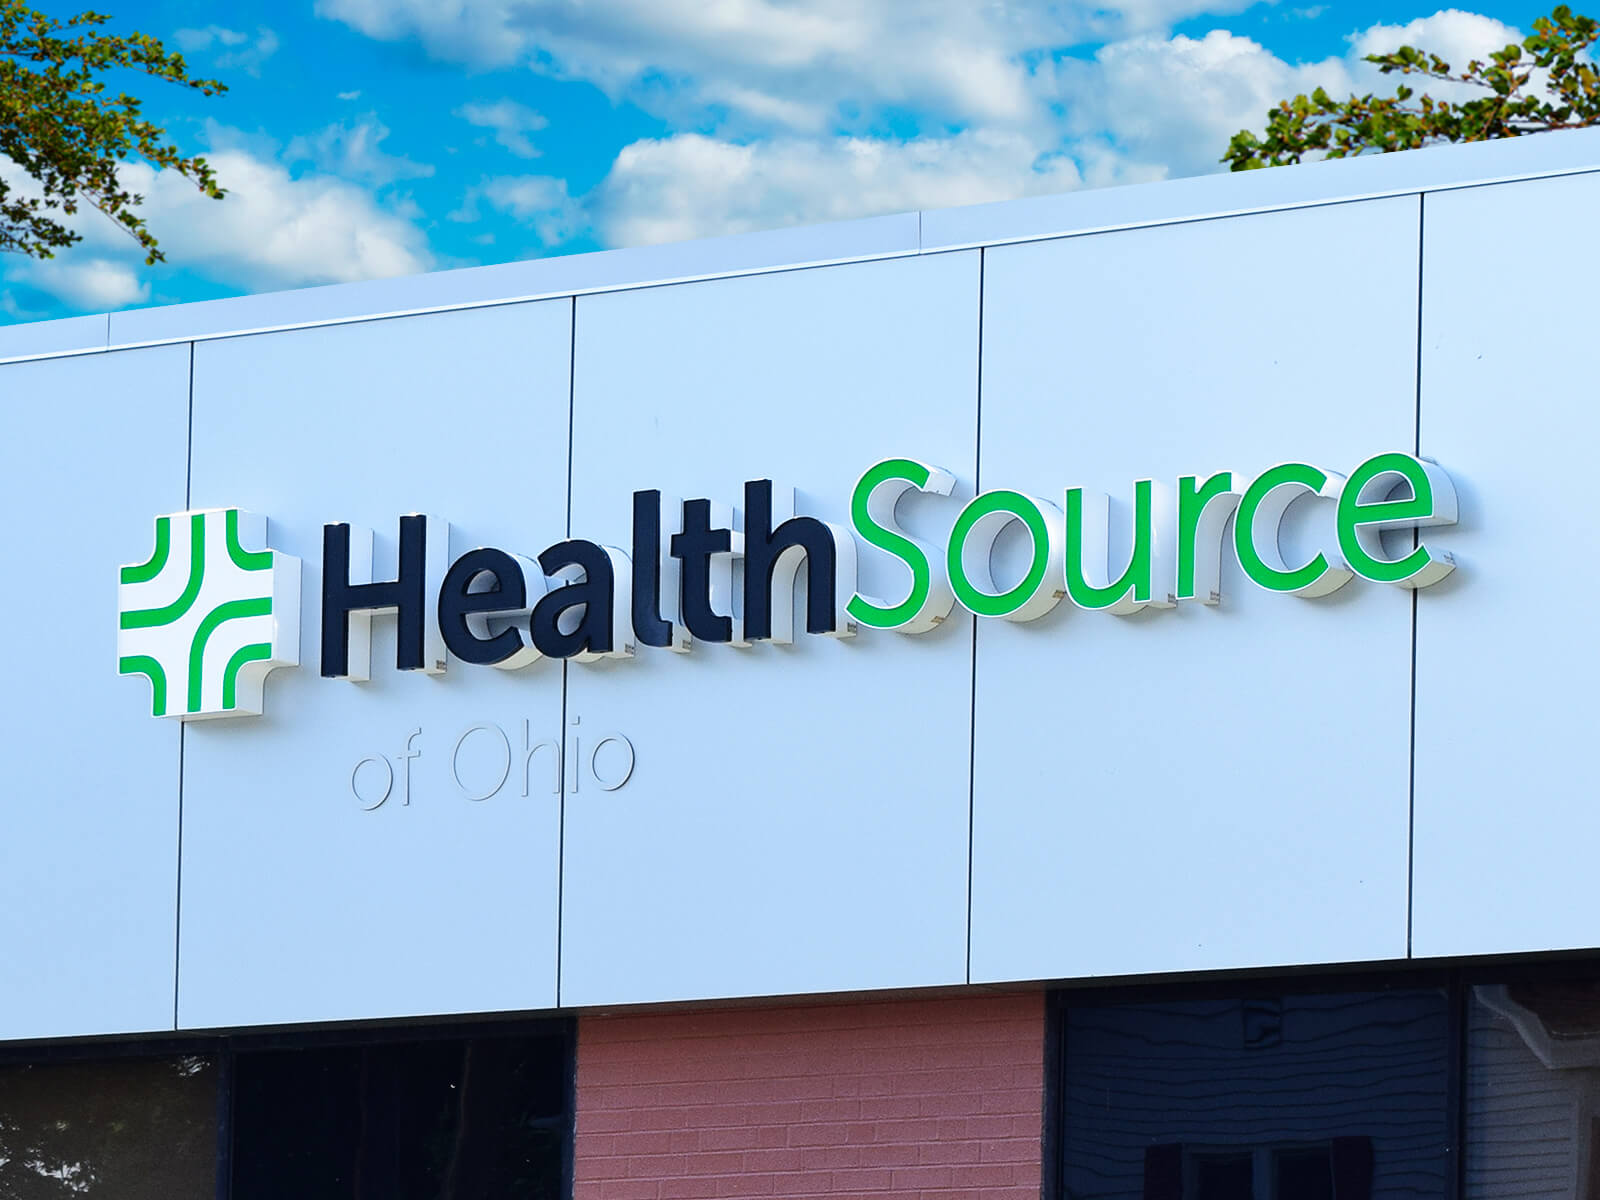 Channel letter and low profile signage for a HealthSource of Ohio clinic.